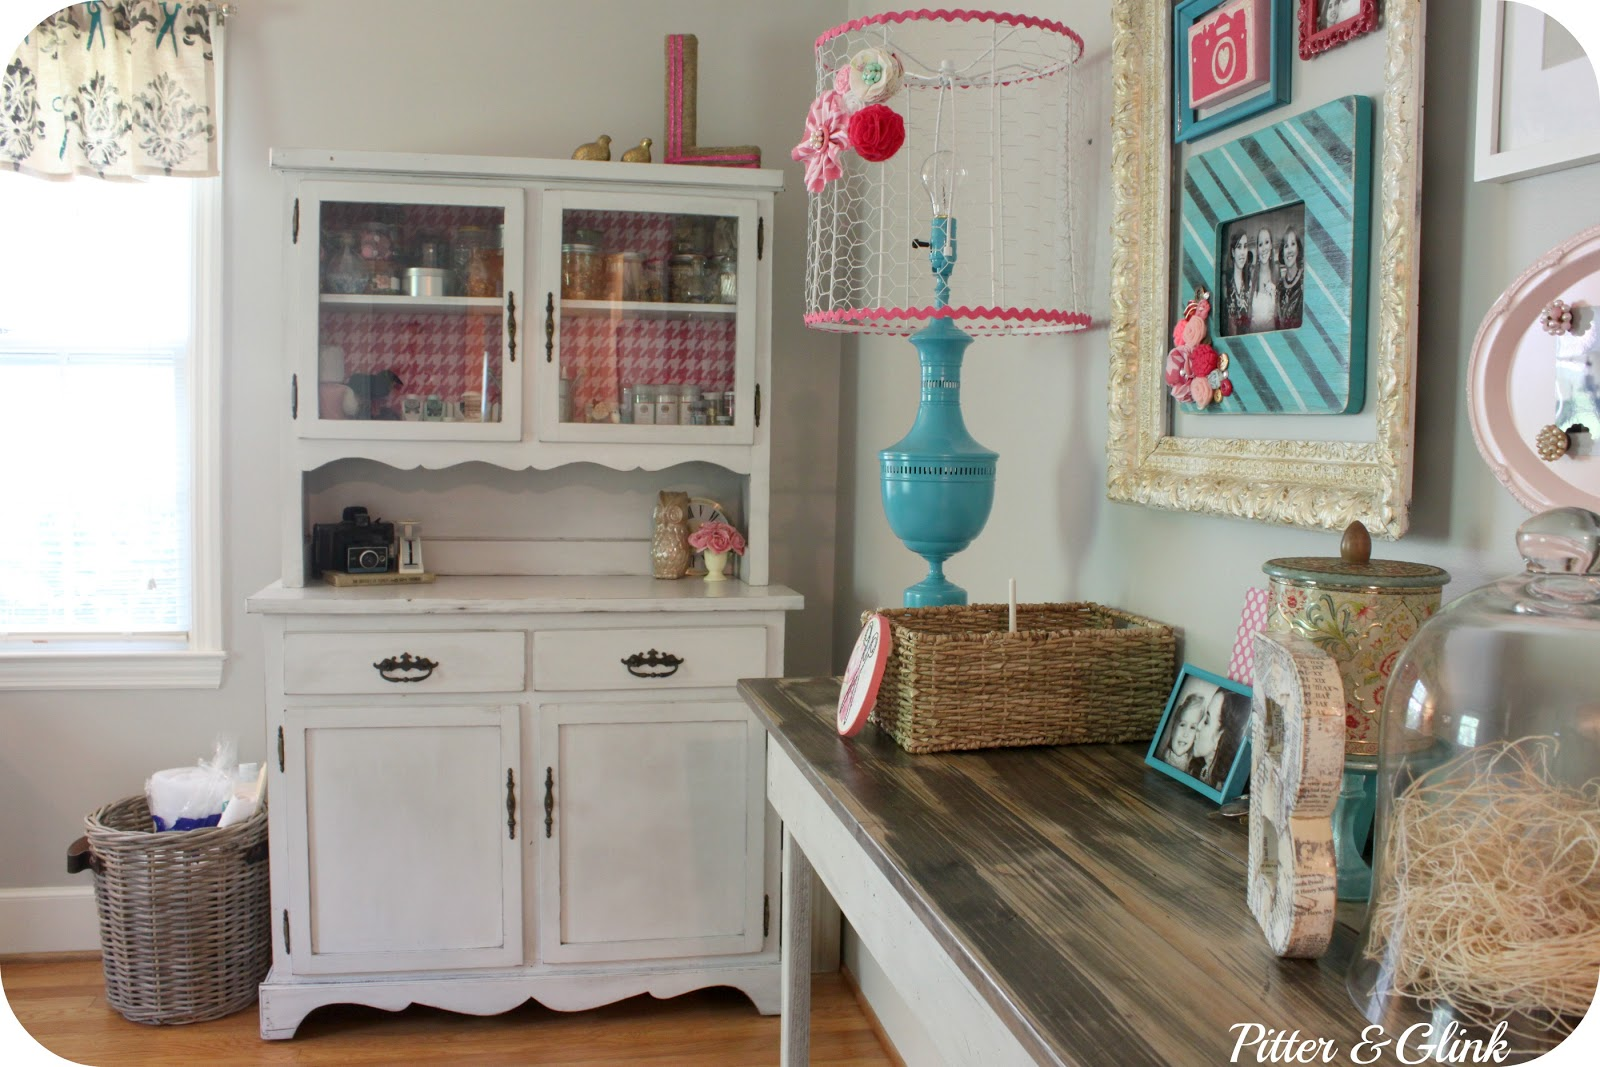 Check out this awesome craft room makeover from pitterandglink.com!